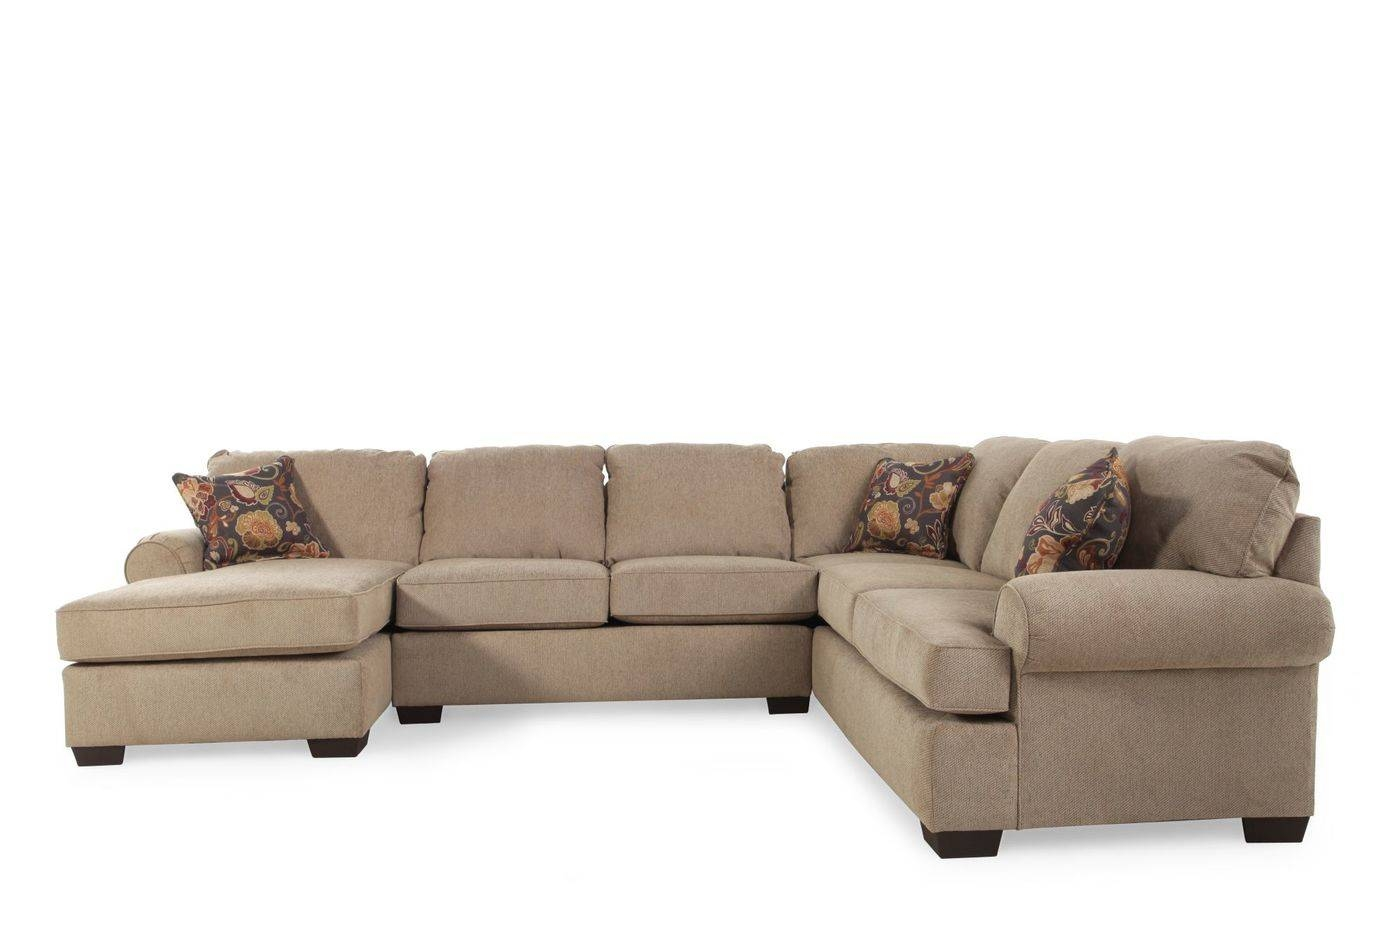 Lane Furniture Sectional Sofa - Hotelsbacau regarding 10 Foot Sectional Sofa (Image 20 of 30)